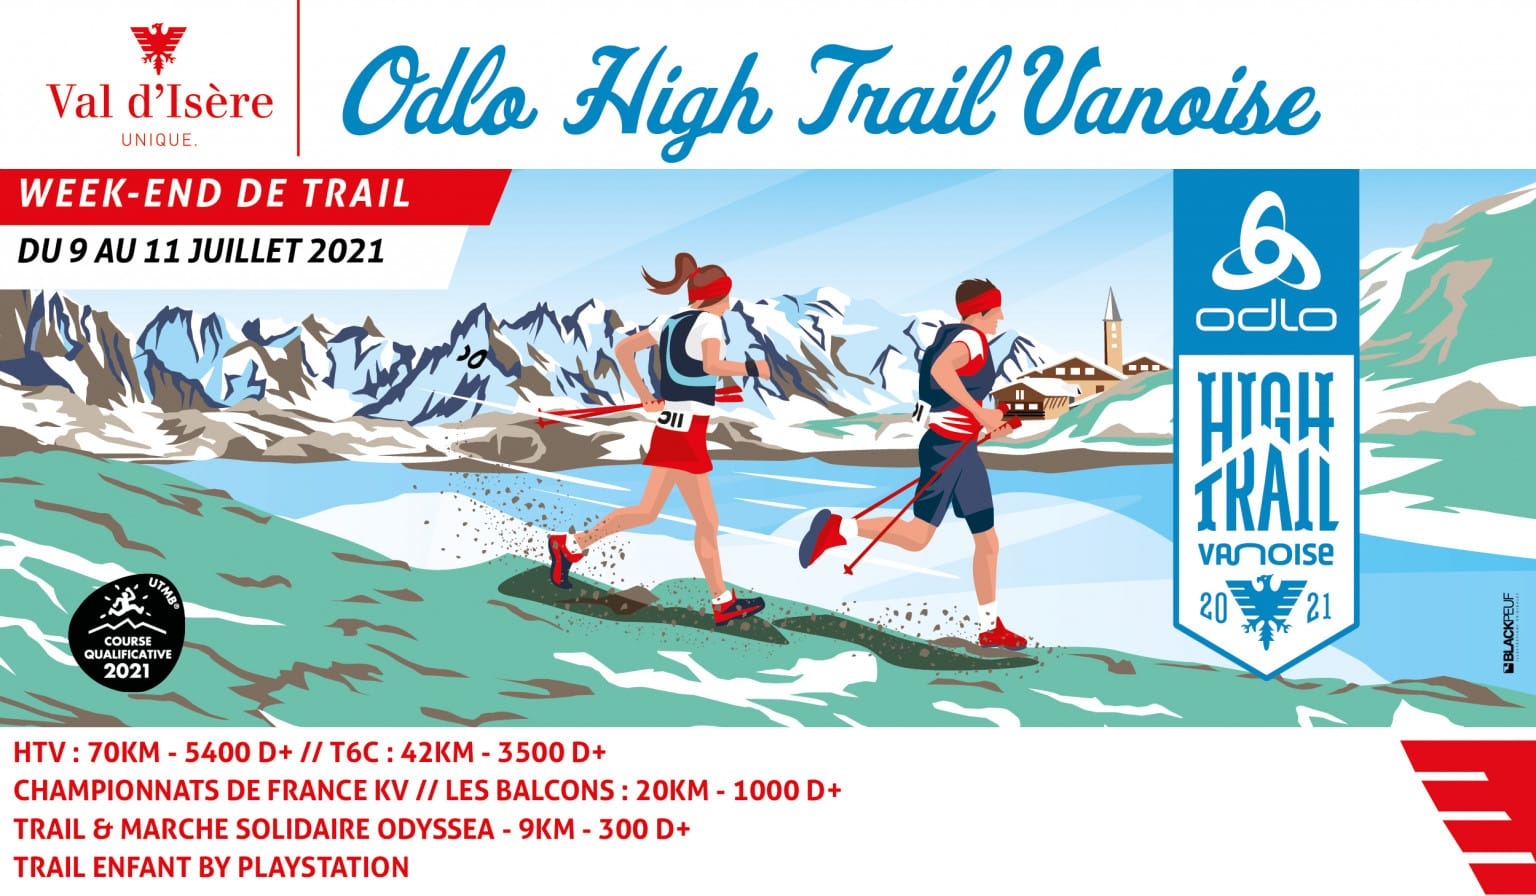 Calendrier Trail 2021 France High Trail Vanoise 2021 (Champ) | Trail Péi